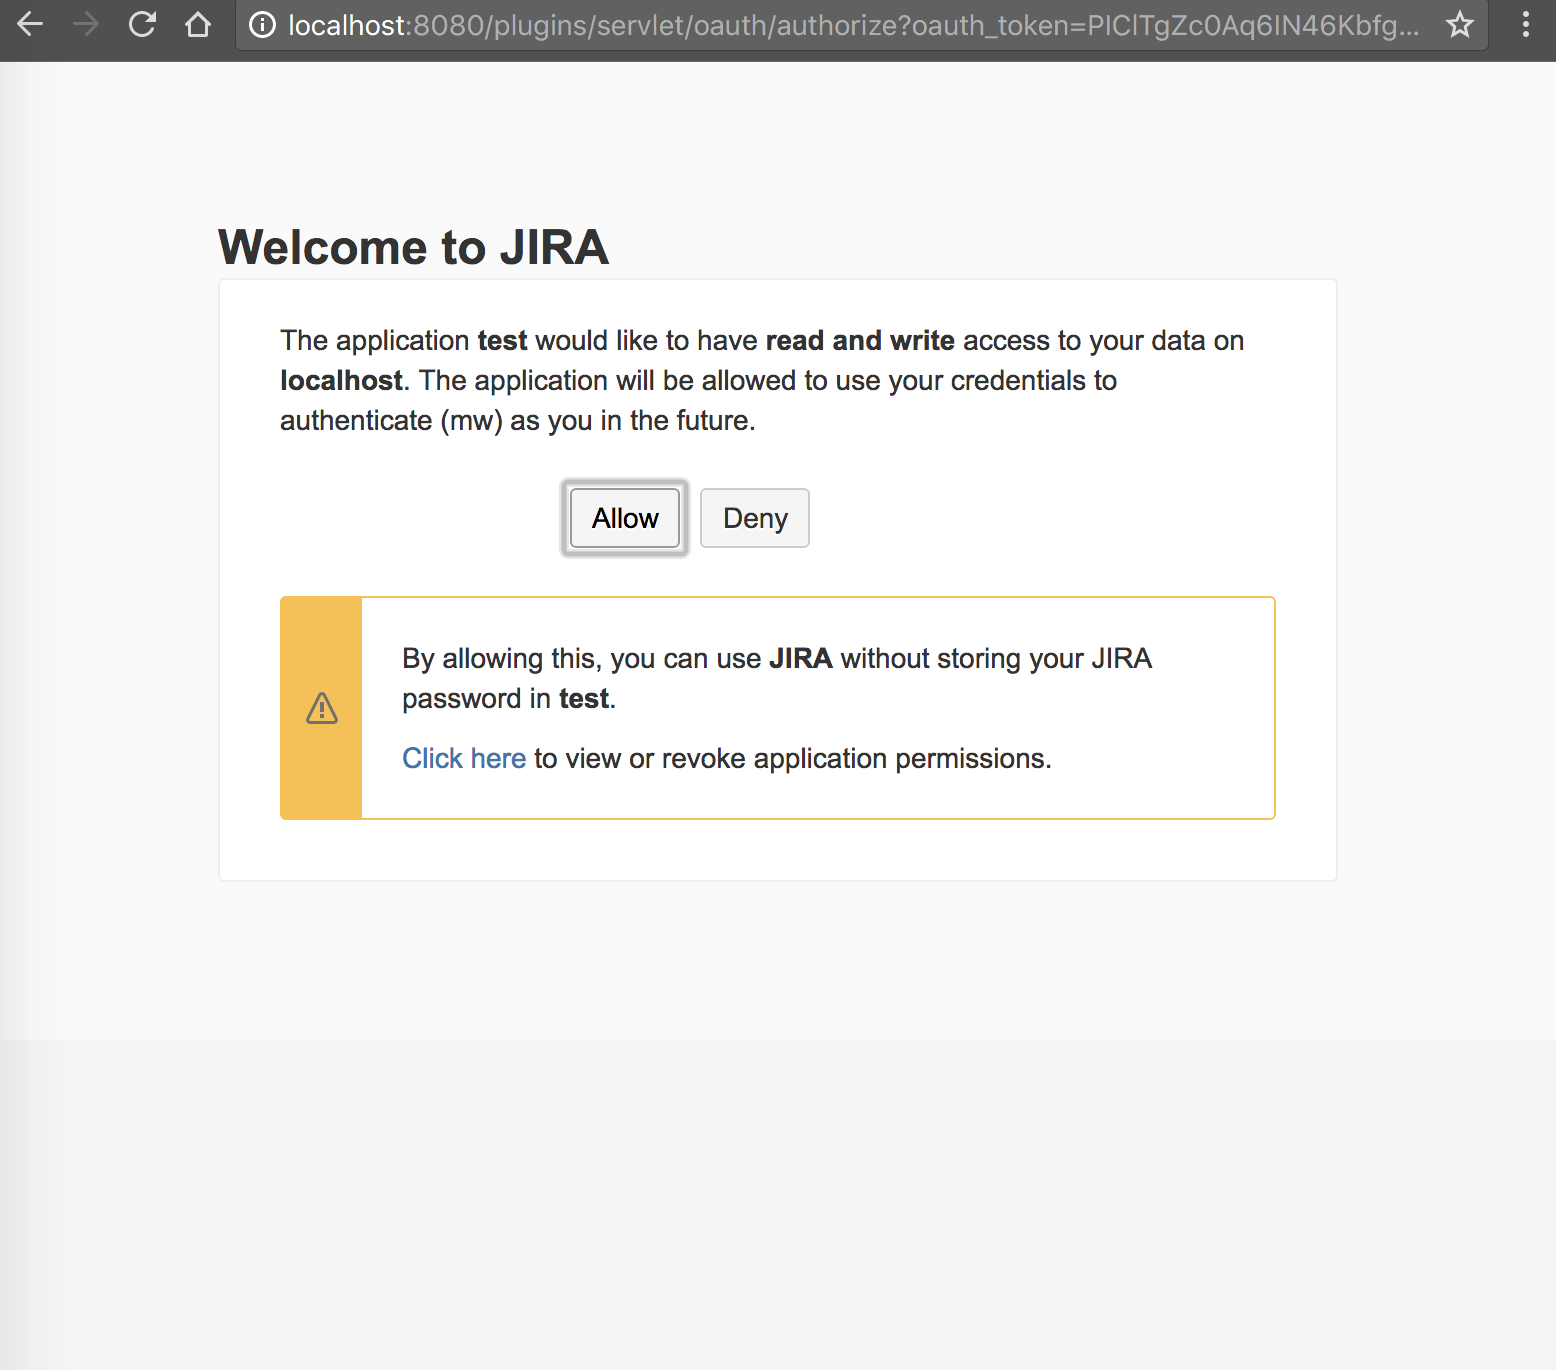 Jira rest api oauth two factor authentication secsign 2fa jira will ask if you give the third party app the permission to read and write content under your account after approving the access jira will confirm baditri Gallery